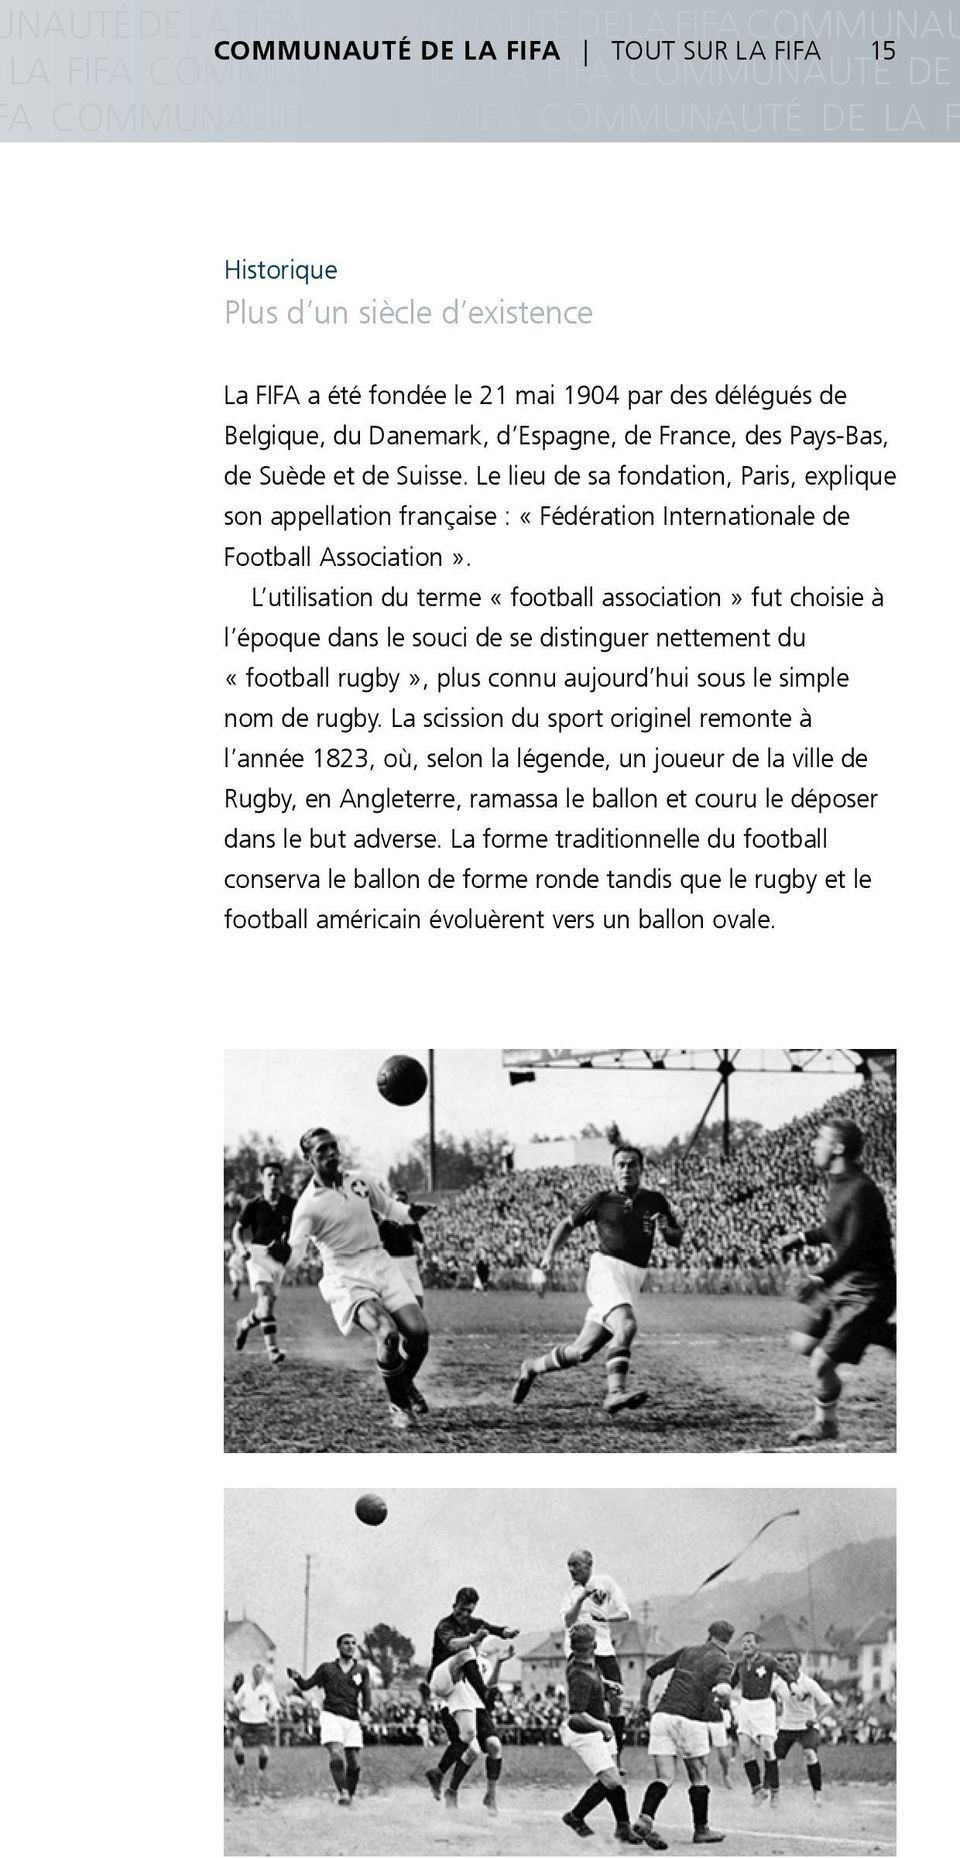 Le lieu de sa fondation, Paris, explique son appellation française : «Fédération Internationale de Football Association».